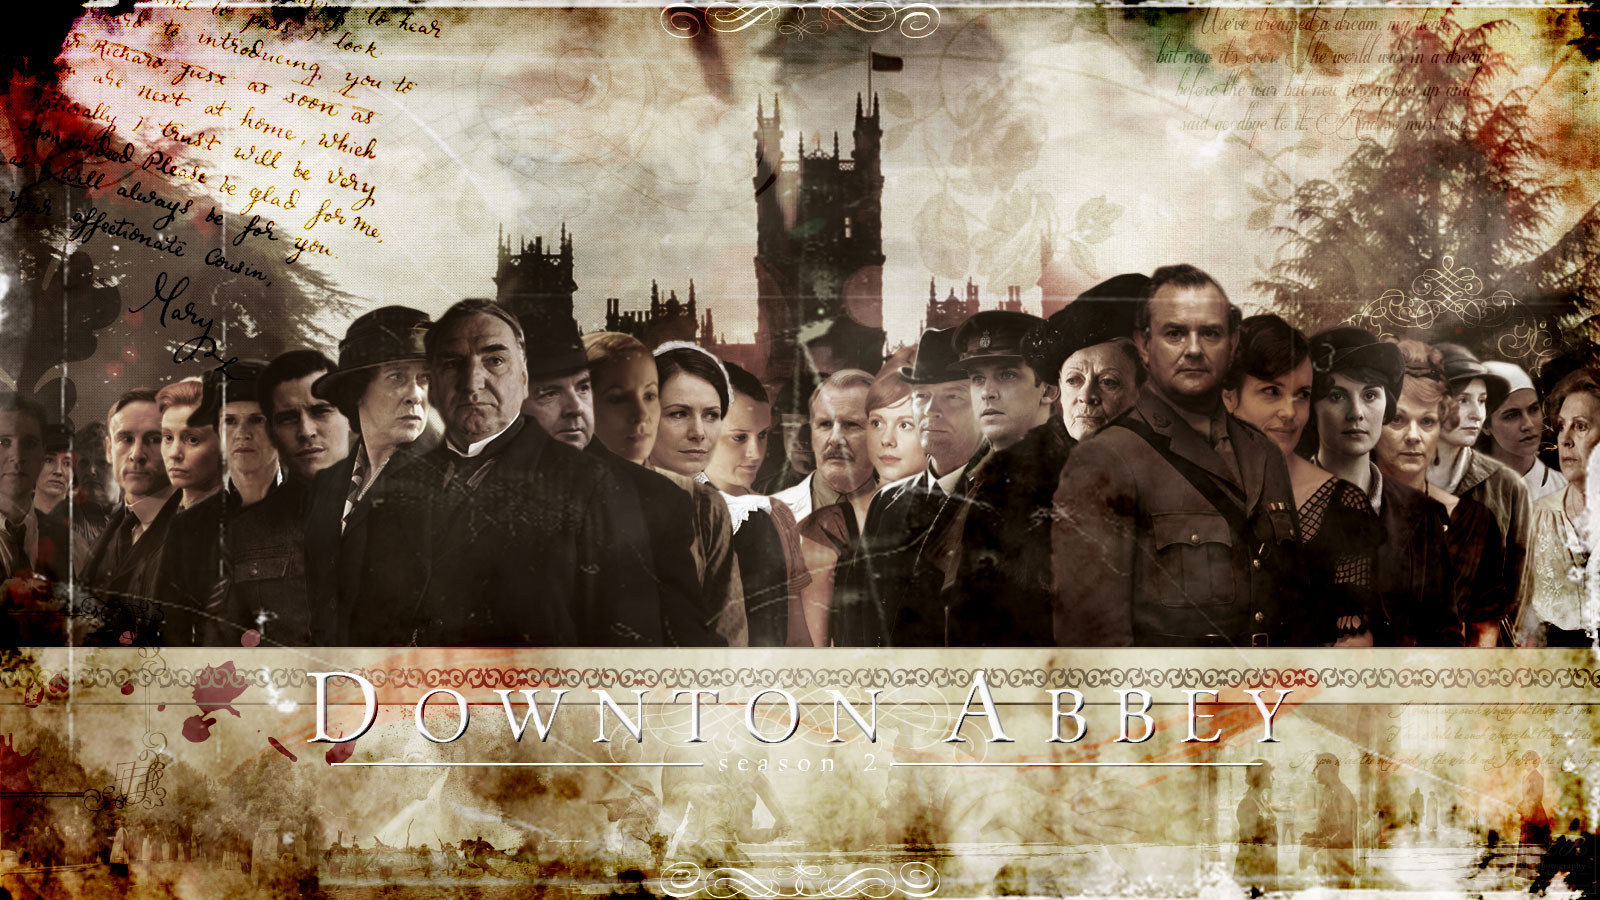 Downton Abbey Wallpaper and Background Image 1600x900 ID 1600x900